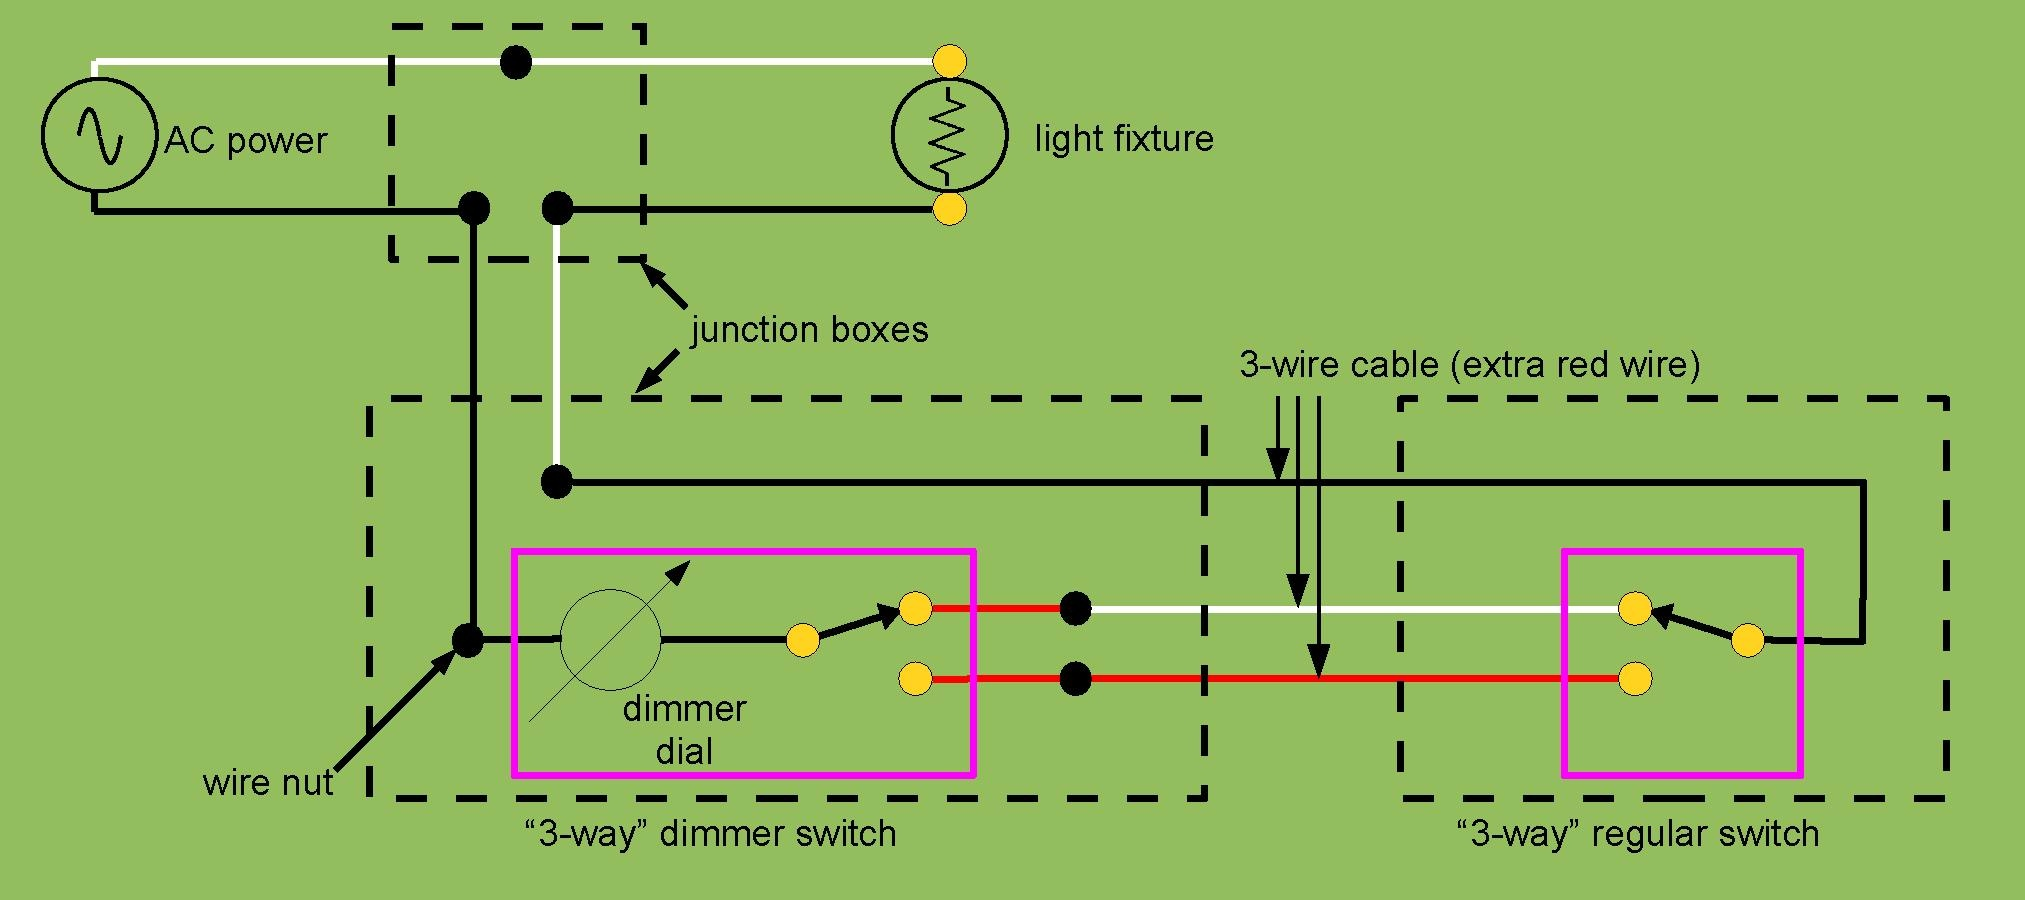 3 Way Switch Wiring Dimmer Light Opinions About Diagram File Pdf Wikimedia Commons With